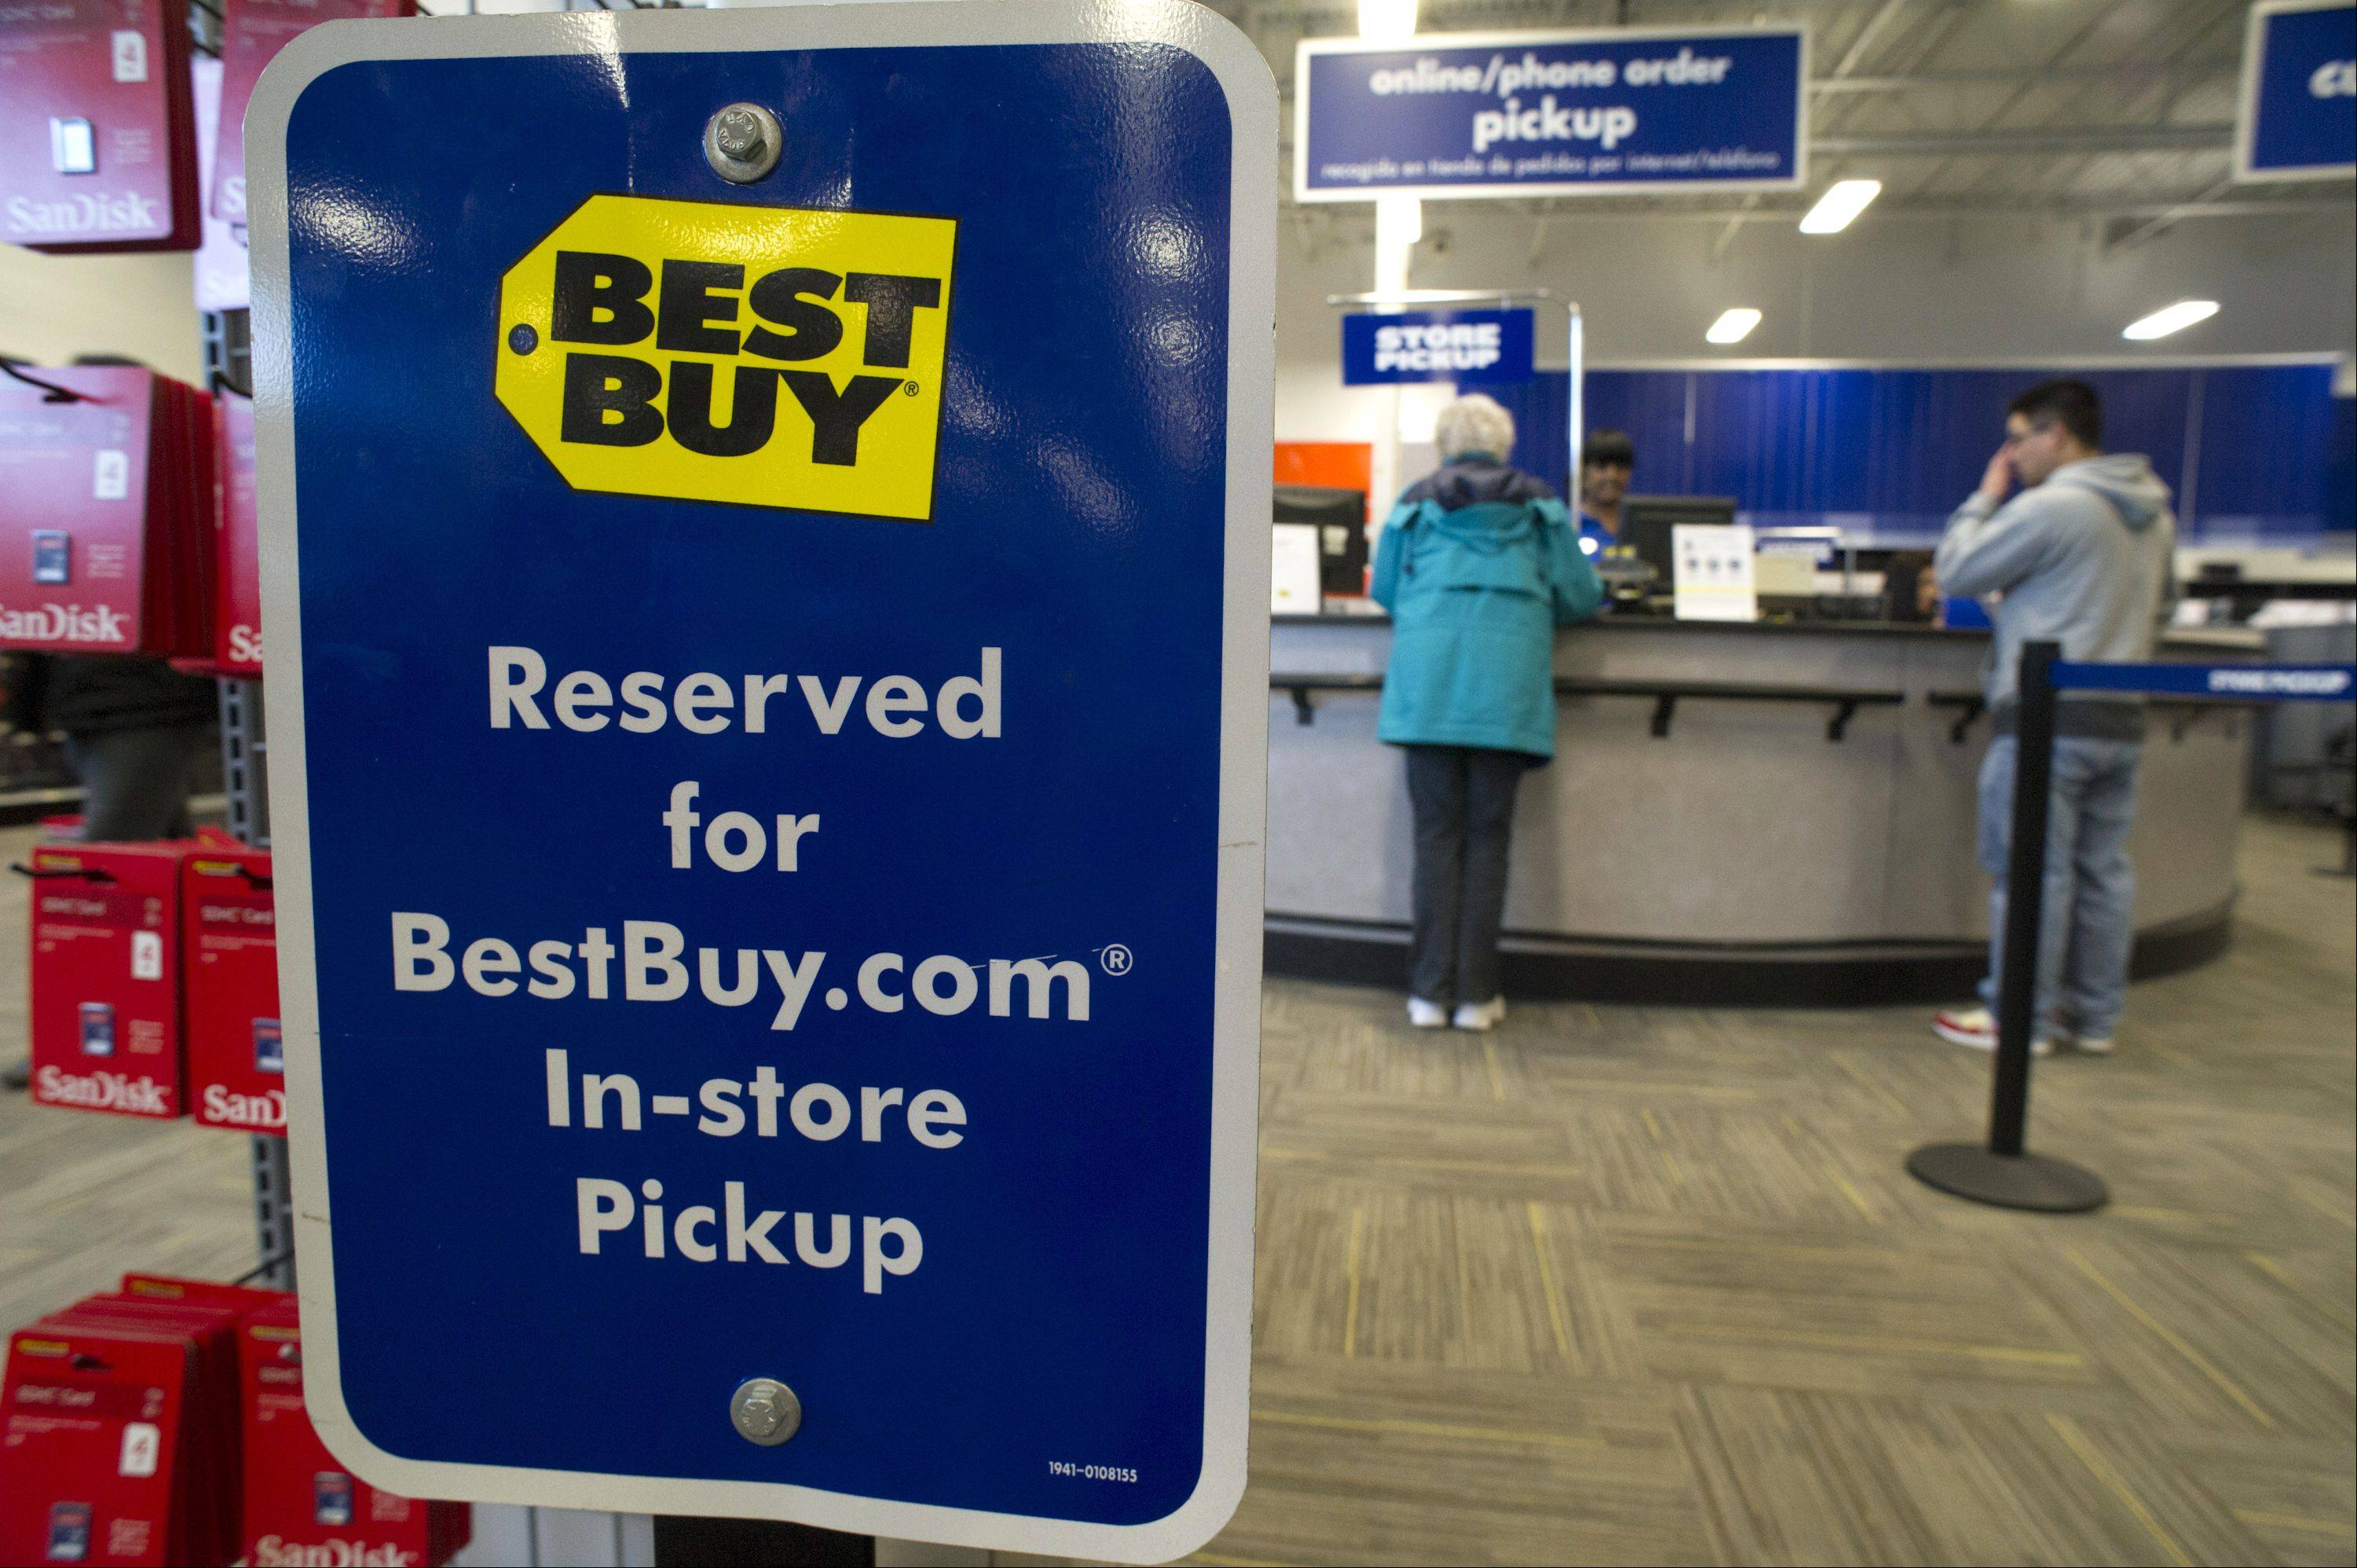 Shares of Best Buy Co. jumped on Friday after the electronics chain showed signs of starting to reverse declining sales during the critical holiday selling season, a better-than-expected result.